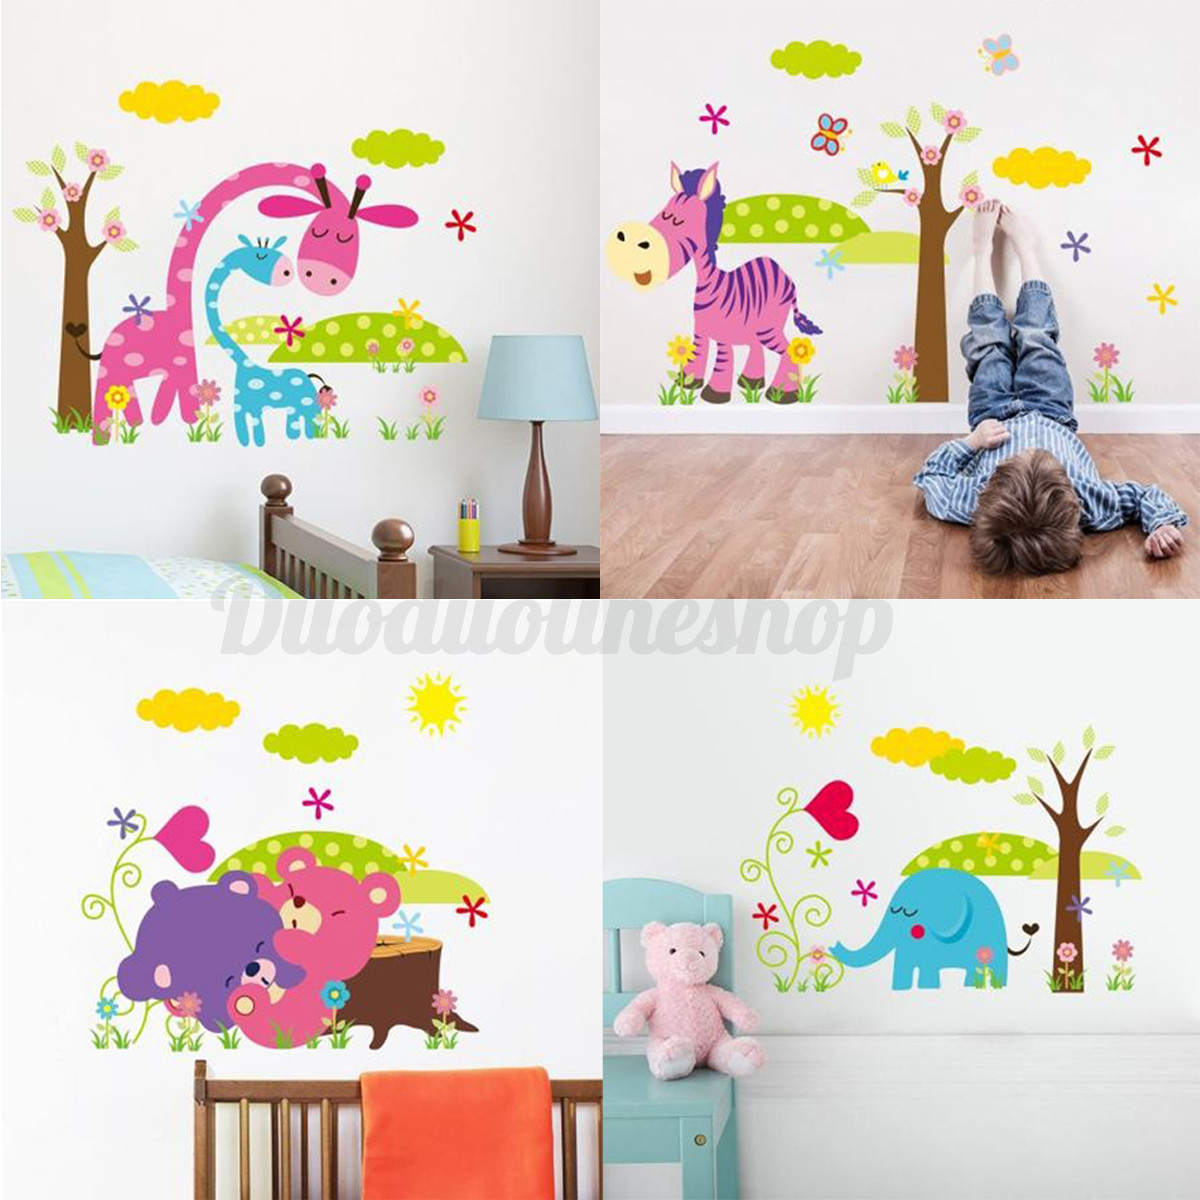 Diy Wall Decor For Baby : Bear giraffe animal diy removable wall sticker decal kid